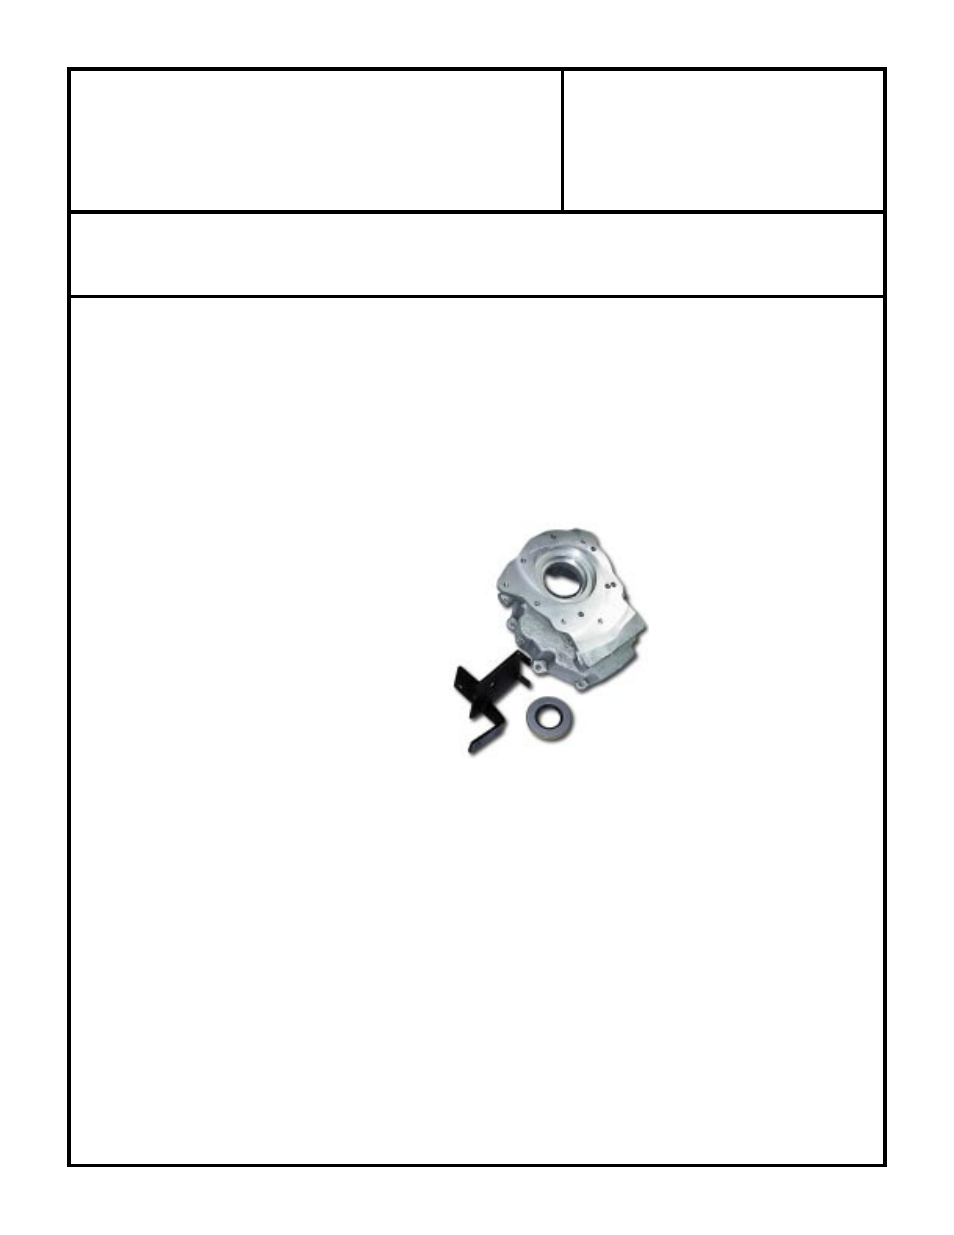 Advance Adapters 50-0204 User Manual   2 pages